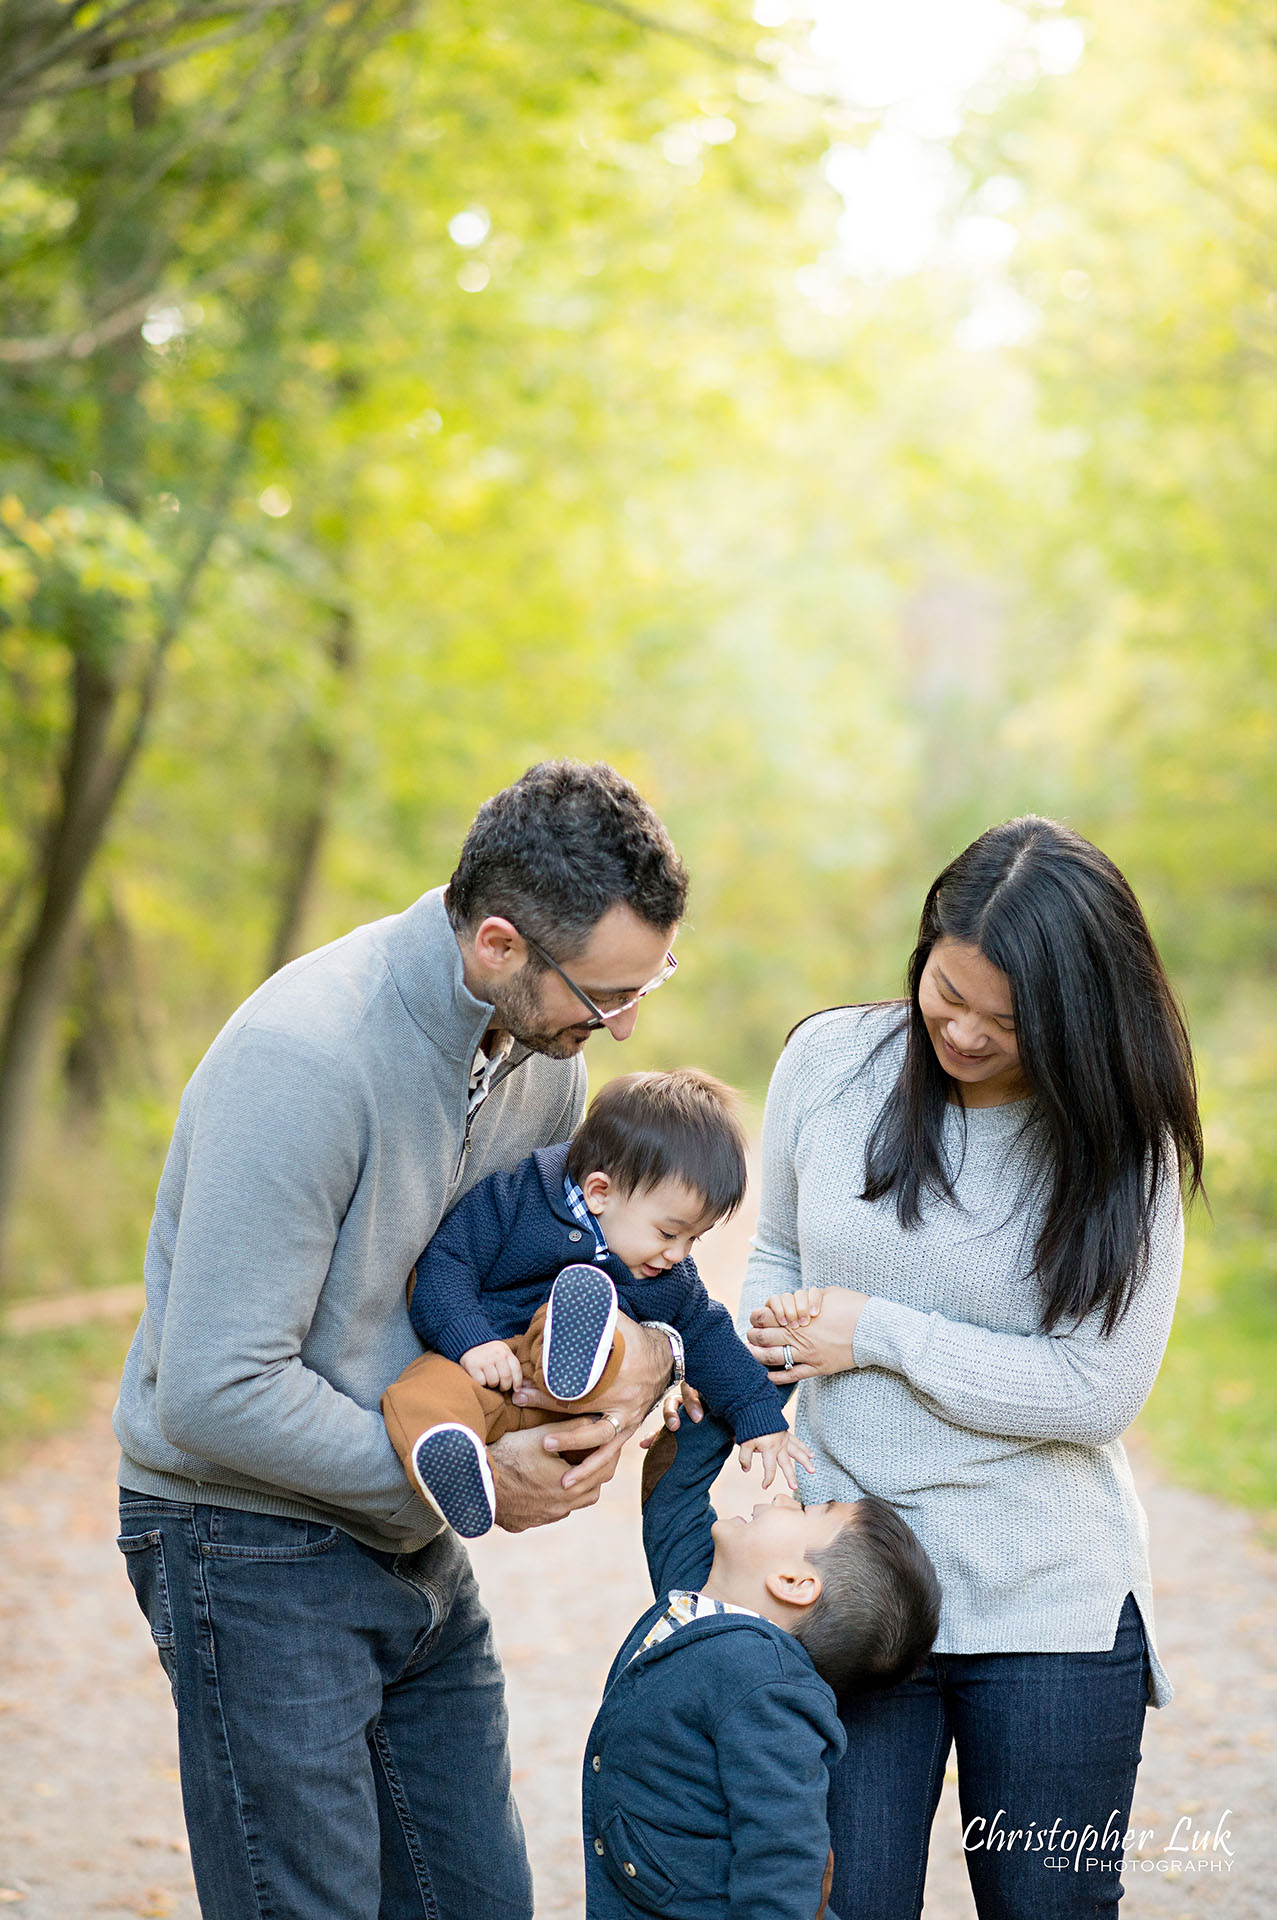 Christopher Luk Family Photographer Toronto Markham Unionville Autumn Fall Leaves Natural Candid Photojournalistic Sons Brothers Baby Boys Father Dad Mother Mom Motherhood Fatherhood Holding Hands Walking Together Trail Pathway Forest Fun Happy Playing with Head Hair